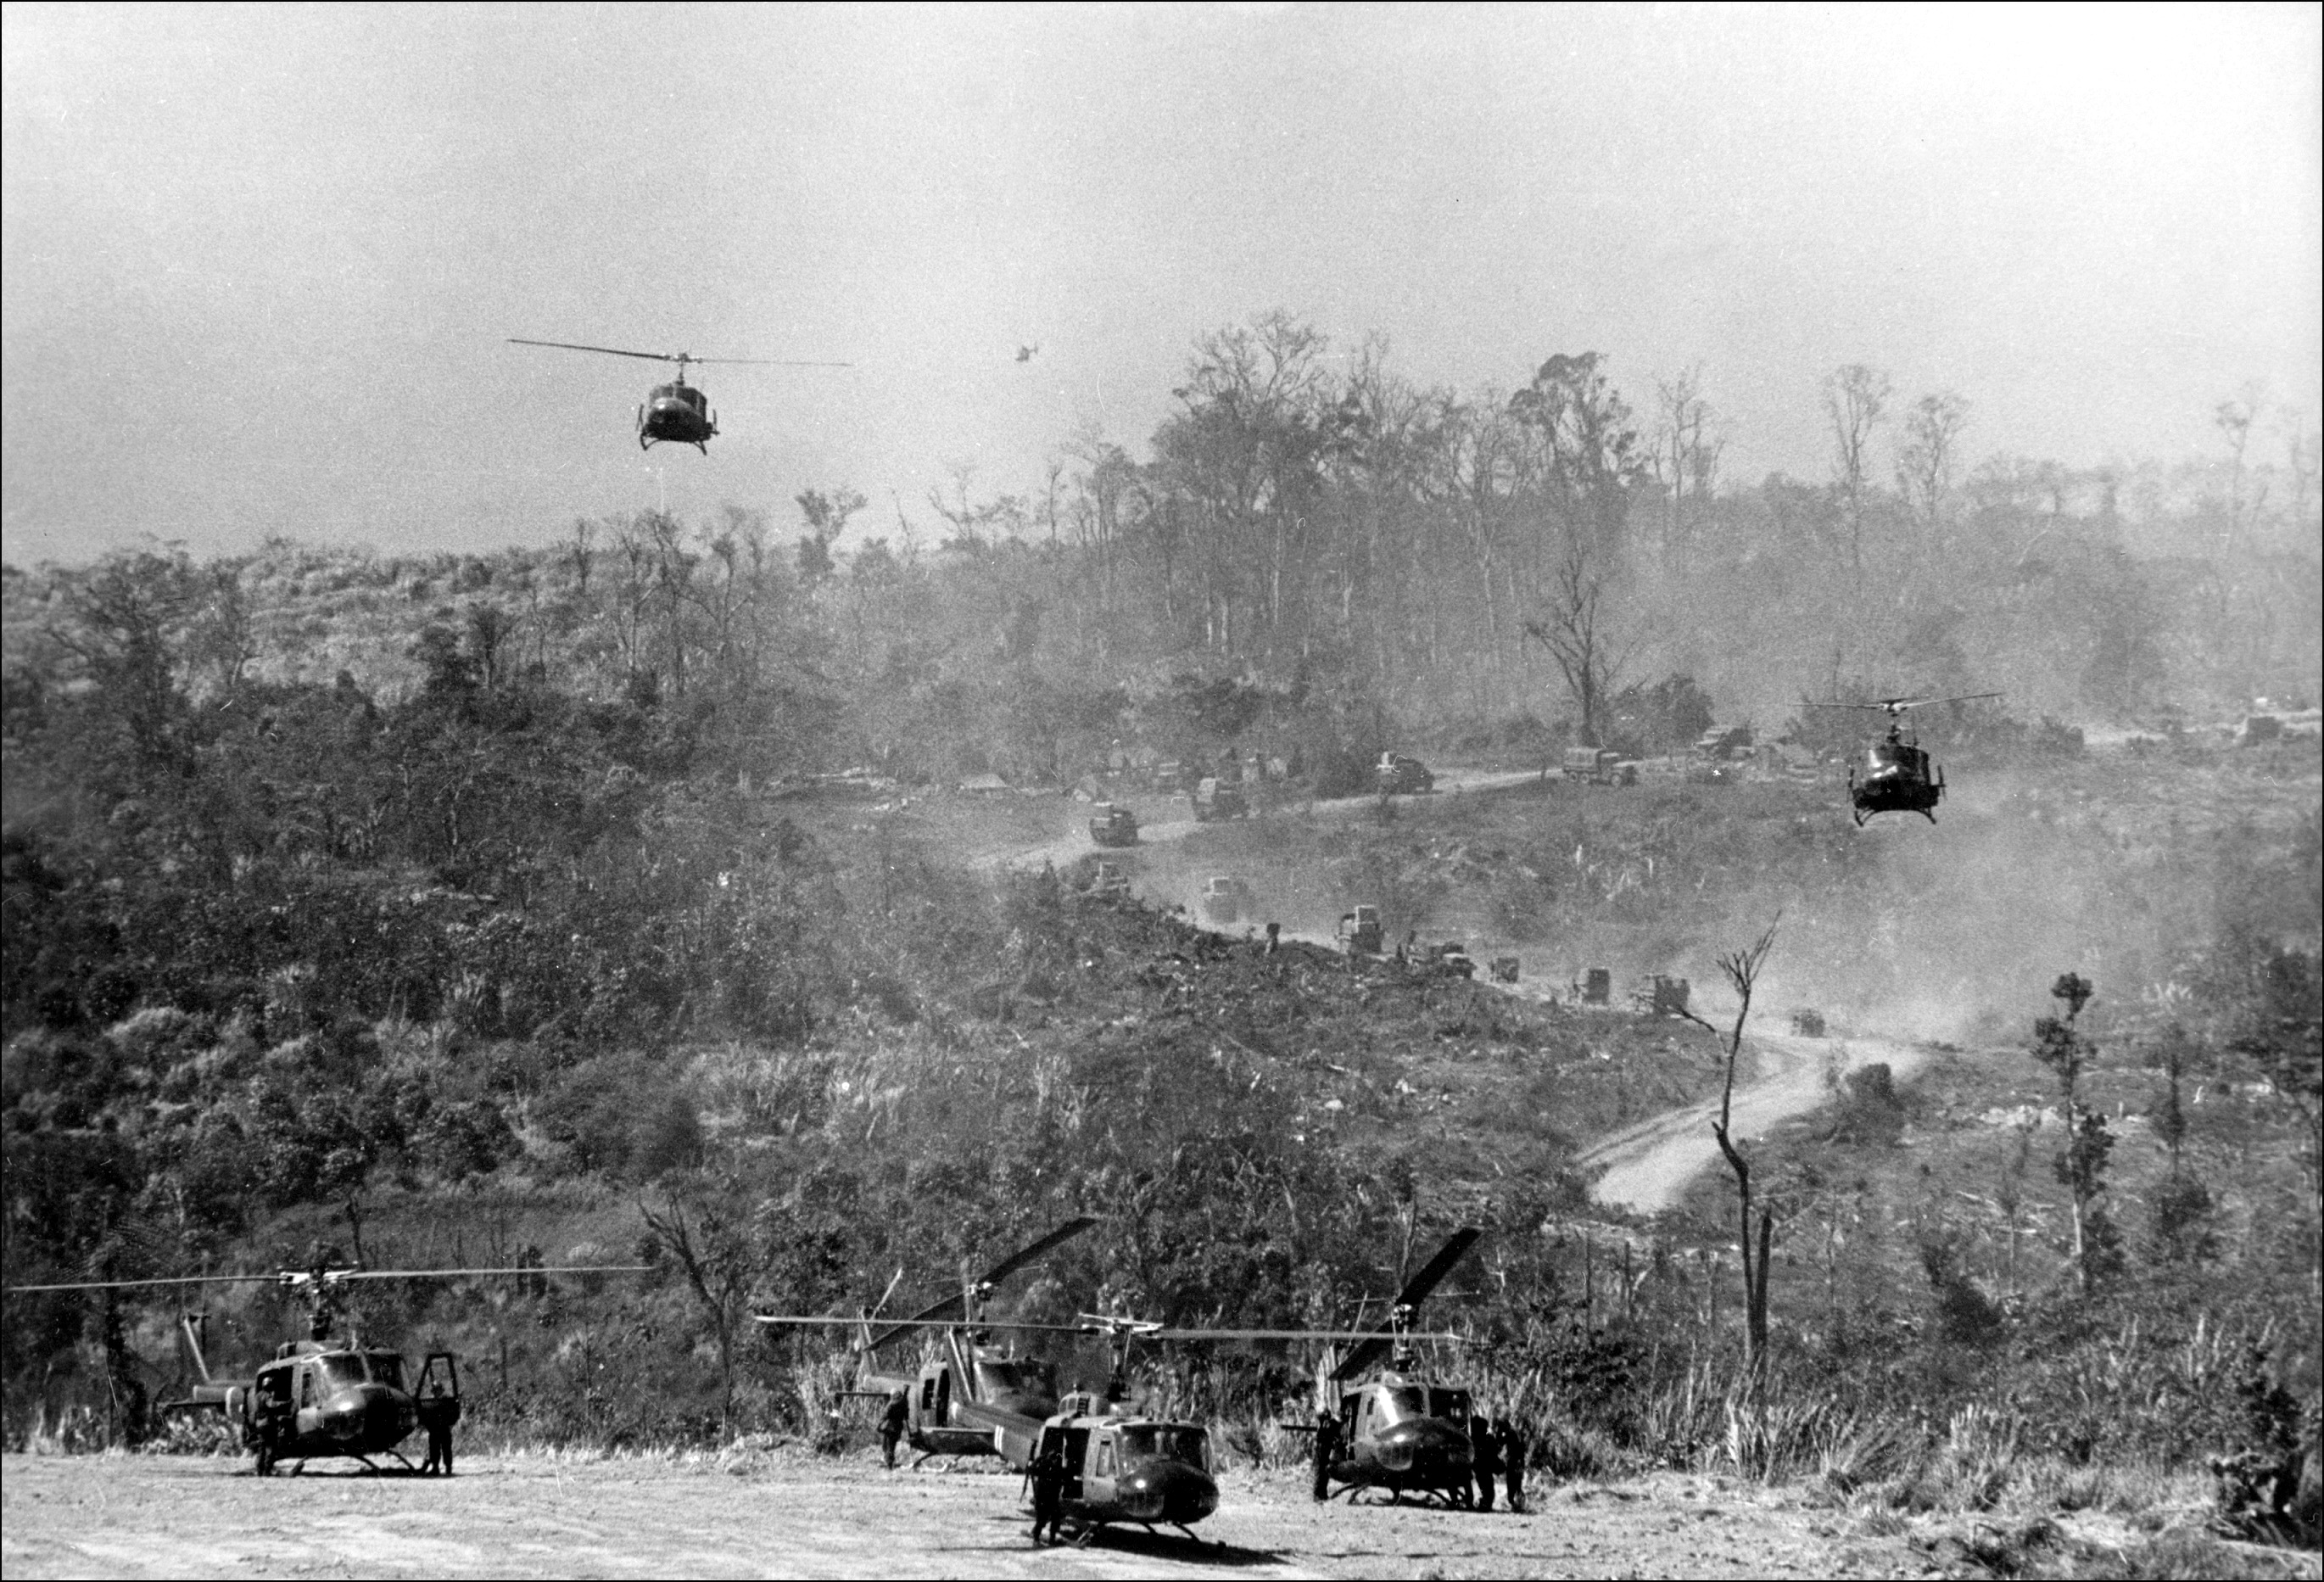 American helicopters land at Khe Sanh base on the Laos border on Feb. 1, 1971 after it was  reactivated  following a Vitcong offensive in Laos.